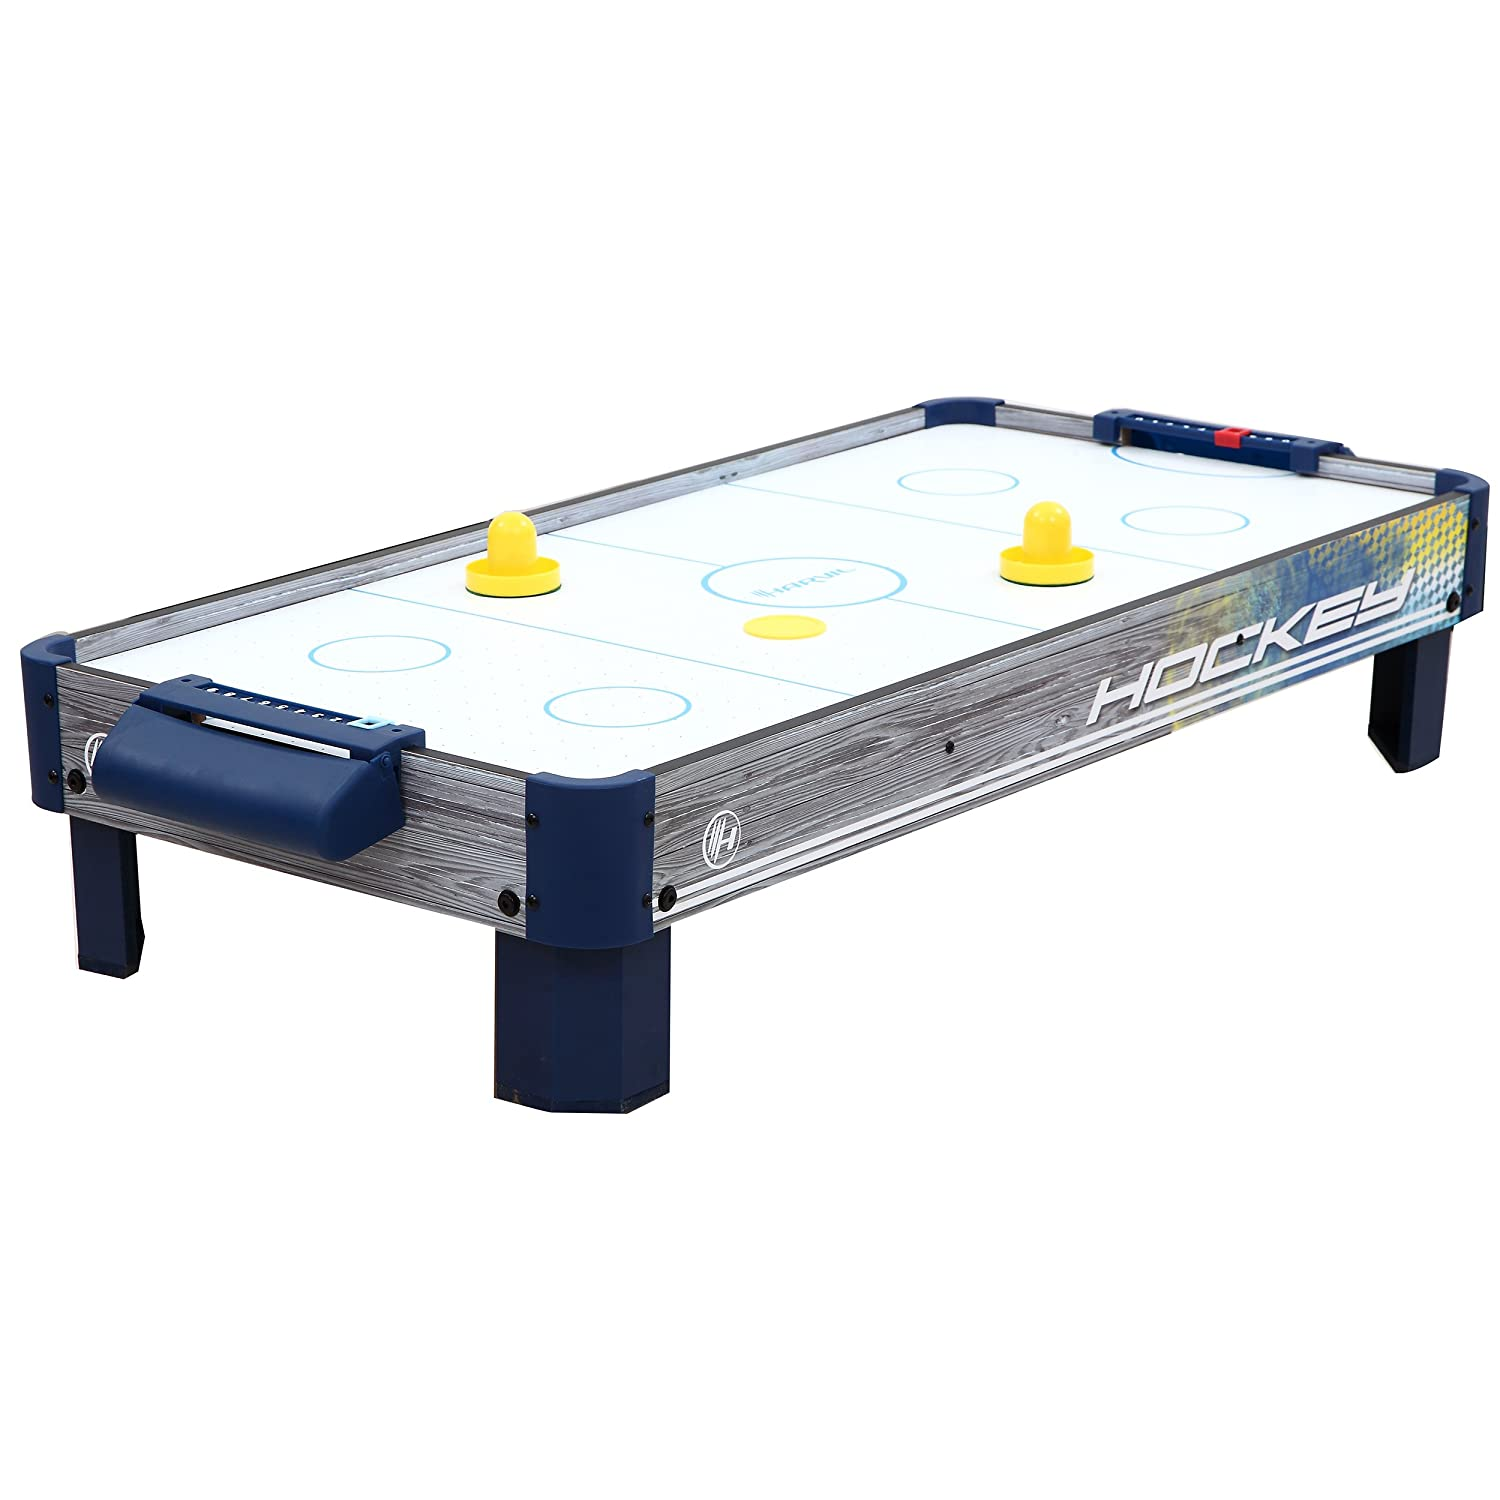 Harvil 40-Inch Tabletop Air Hockey Table with Powerful Electronic Blower, 2 Paddles, and 2 Pucks.